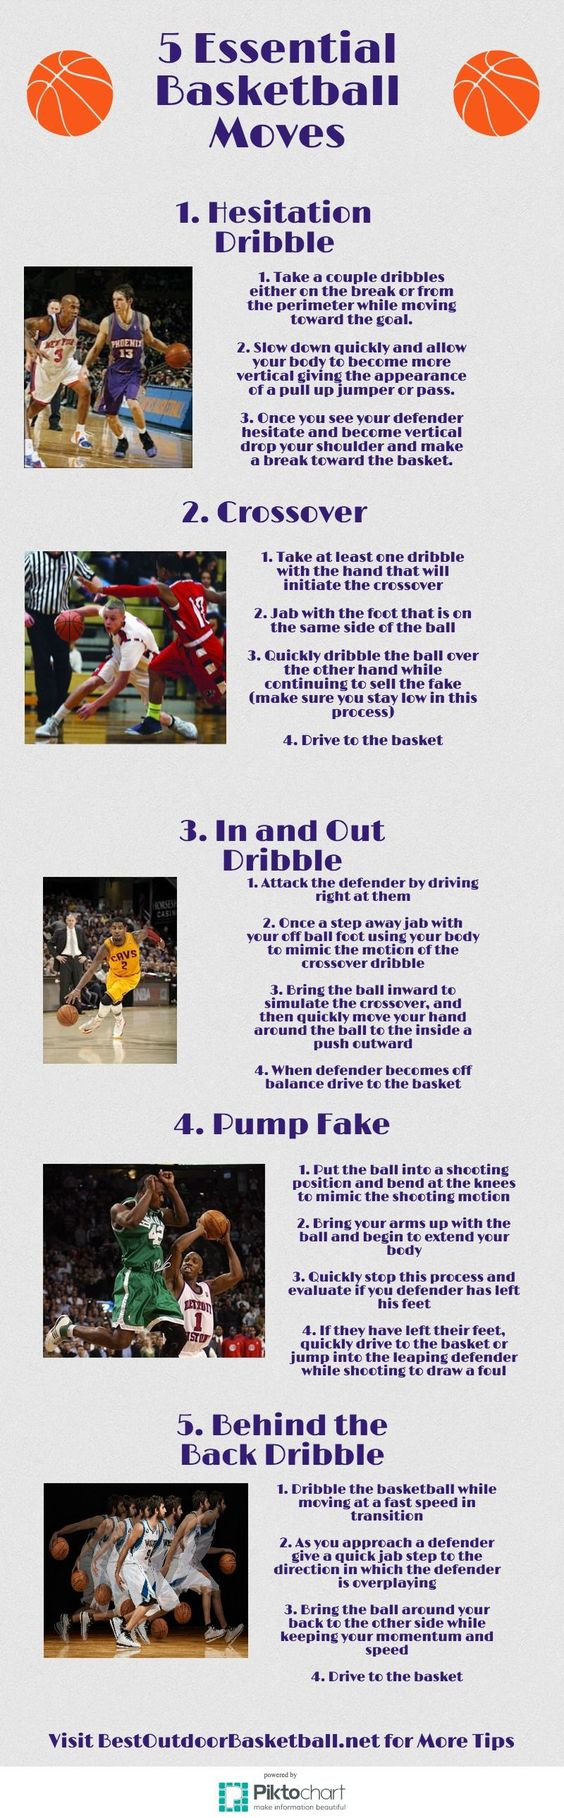 5 Essential Basketball Moves | @Piktochart Infographic